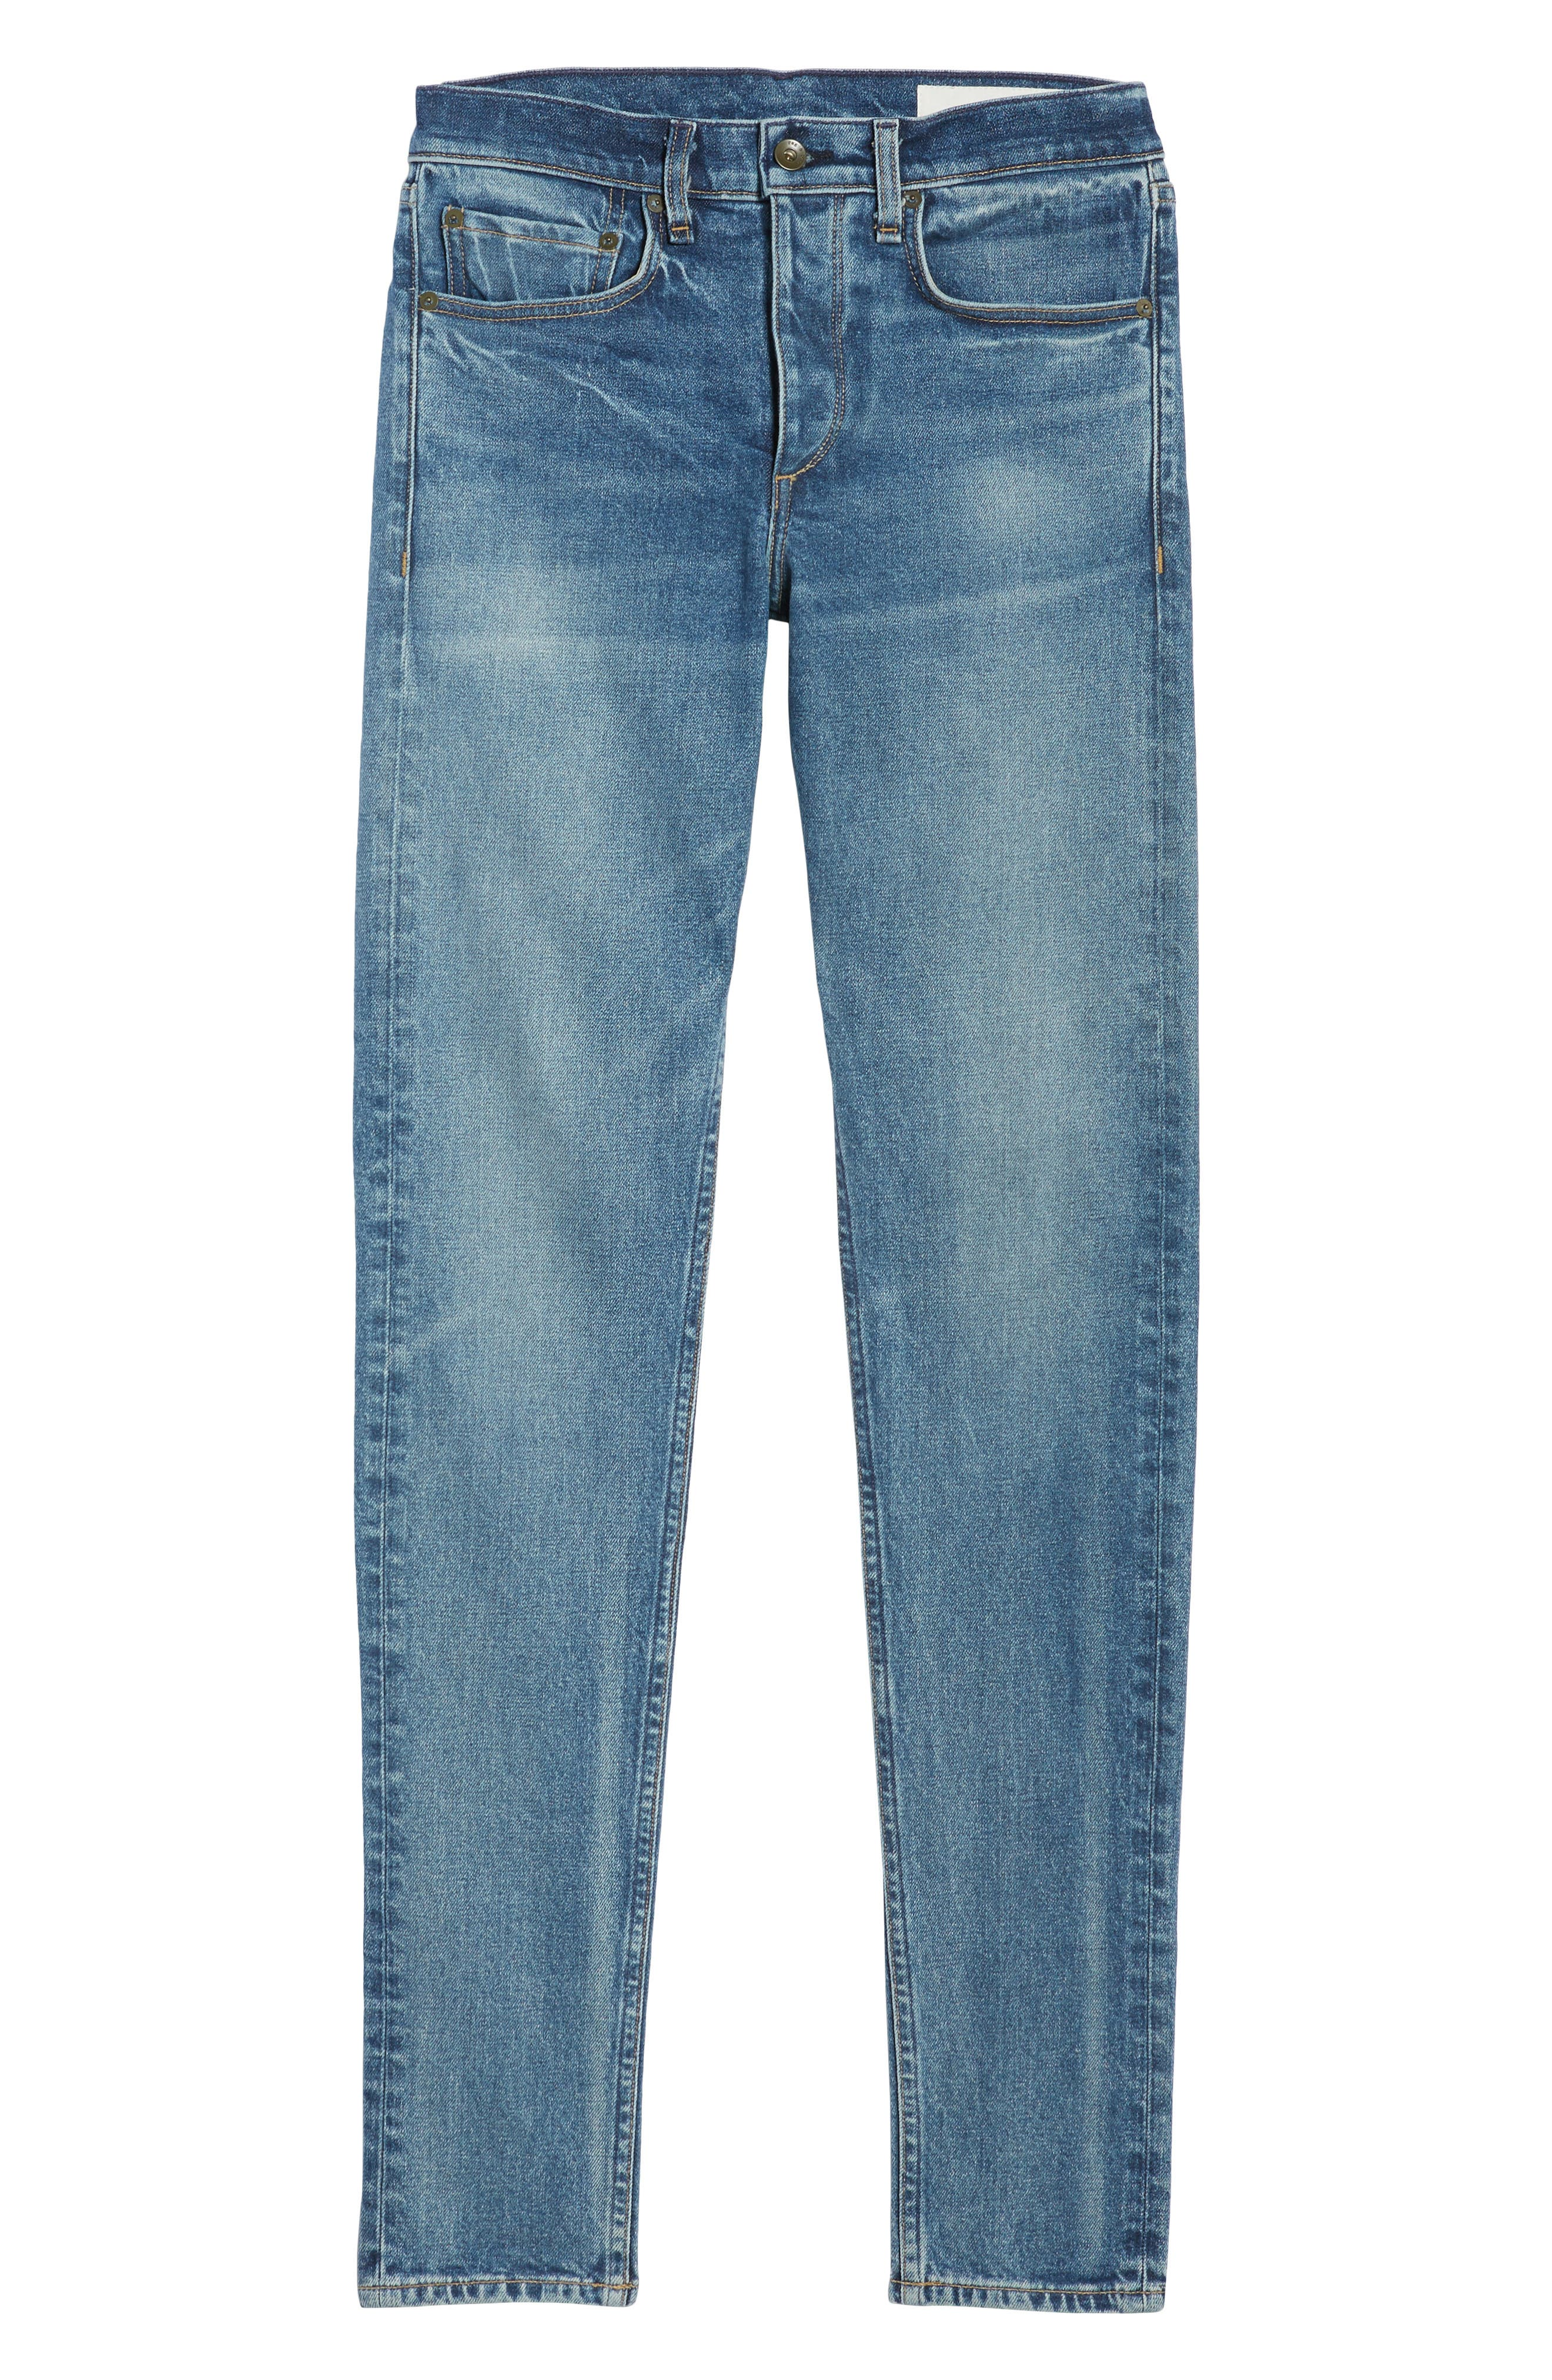 Fit 1 Skinny Fit Jeans,                             Alternate thumbnail 6, color,                             Brighton